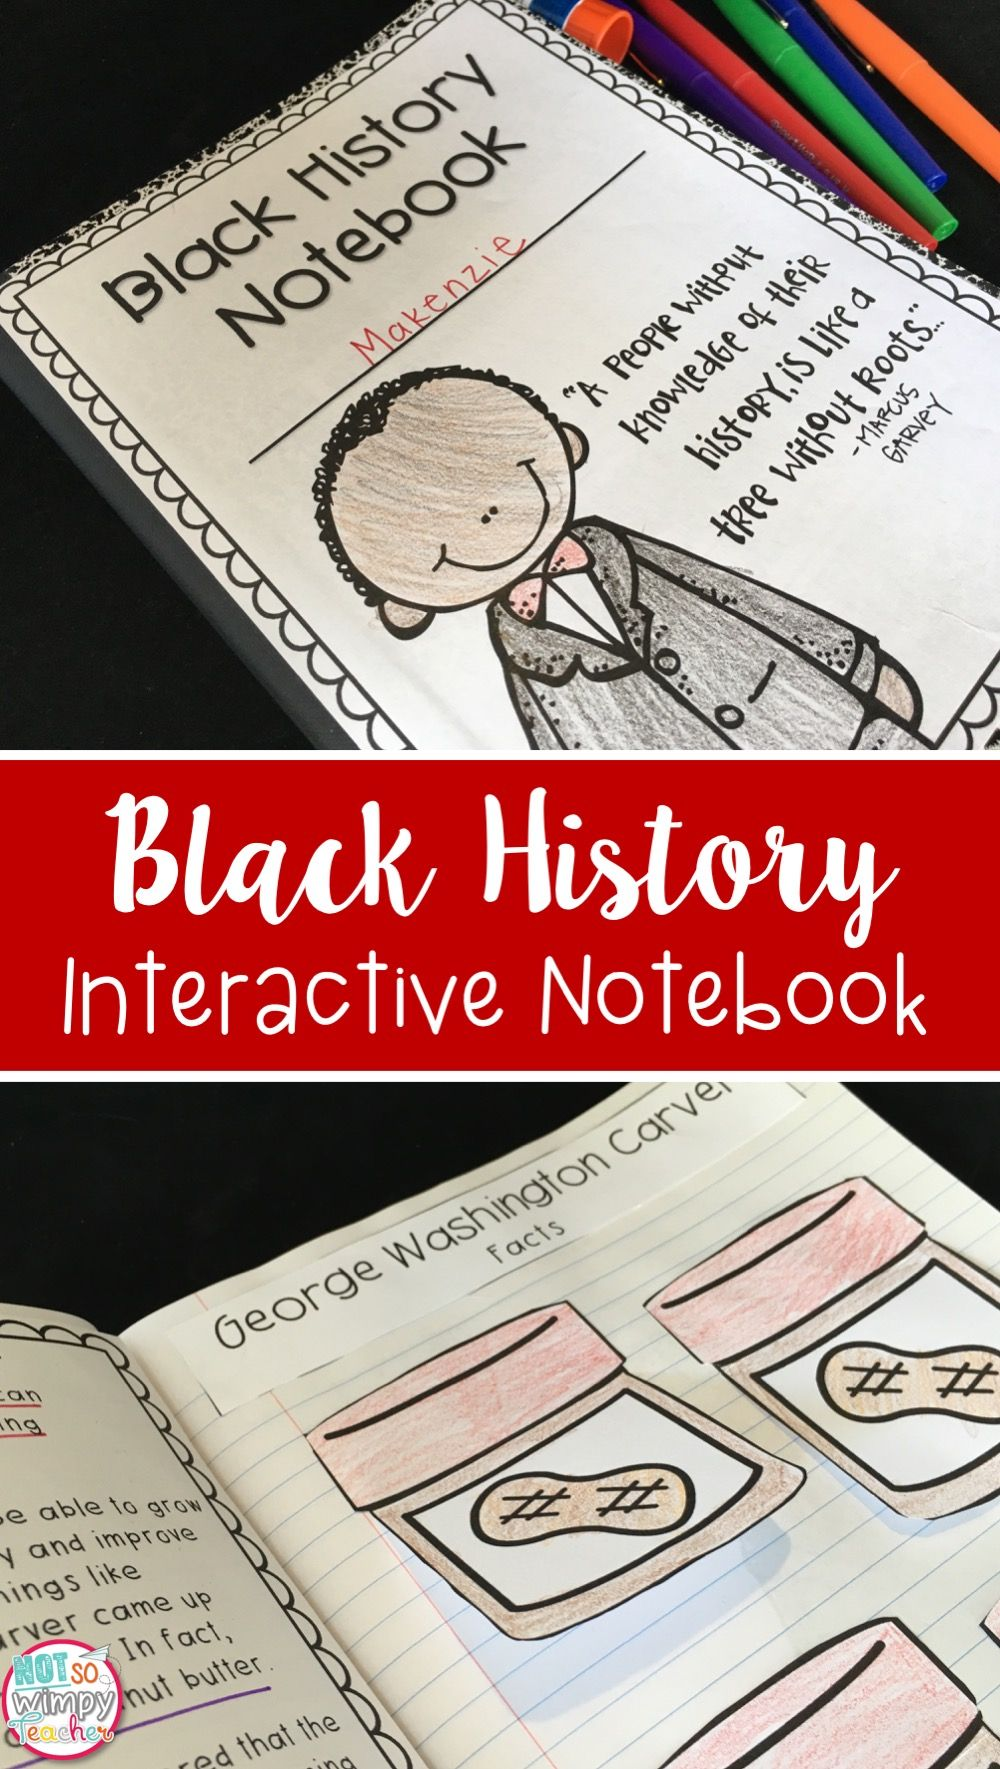 Pin By Jessica Montgomery On Mlk Black History Month Activities Black History Activities Black History Month Activities Preschool [ 1769 x 1000 Pixel ]